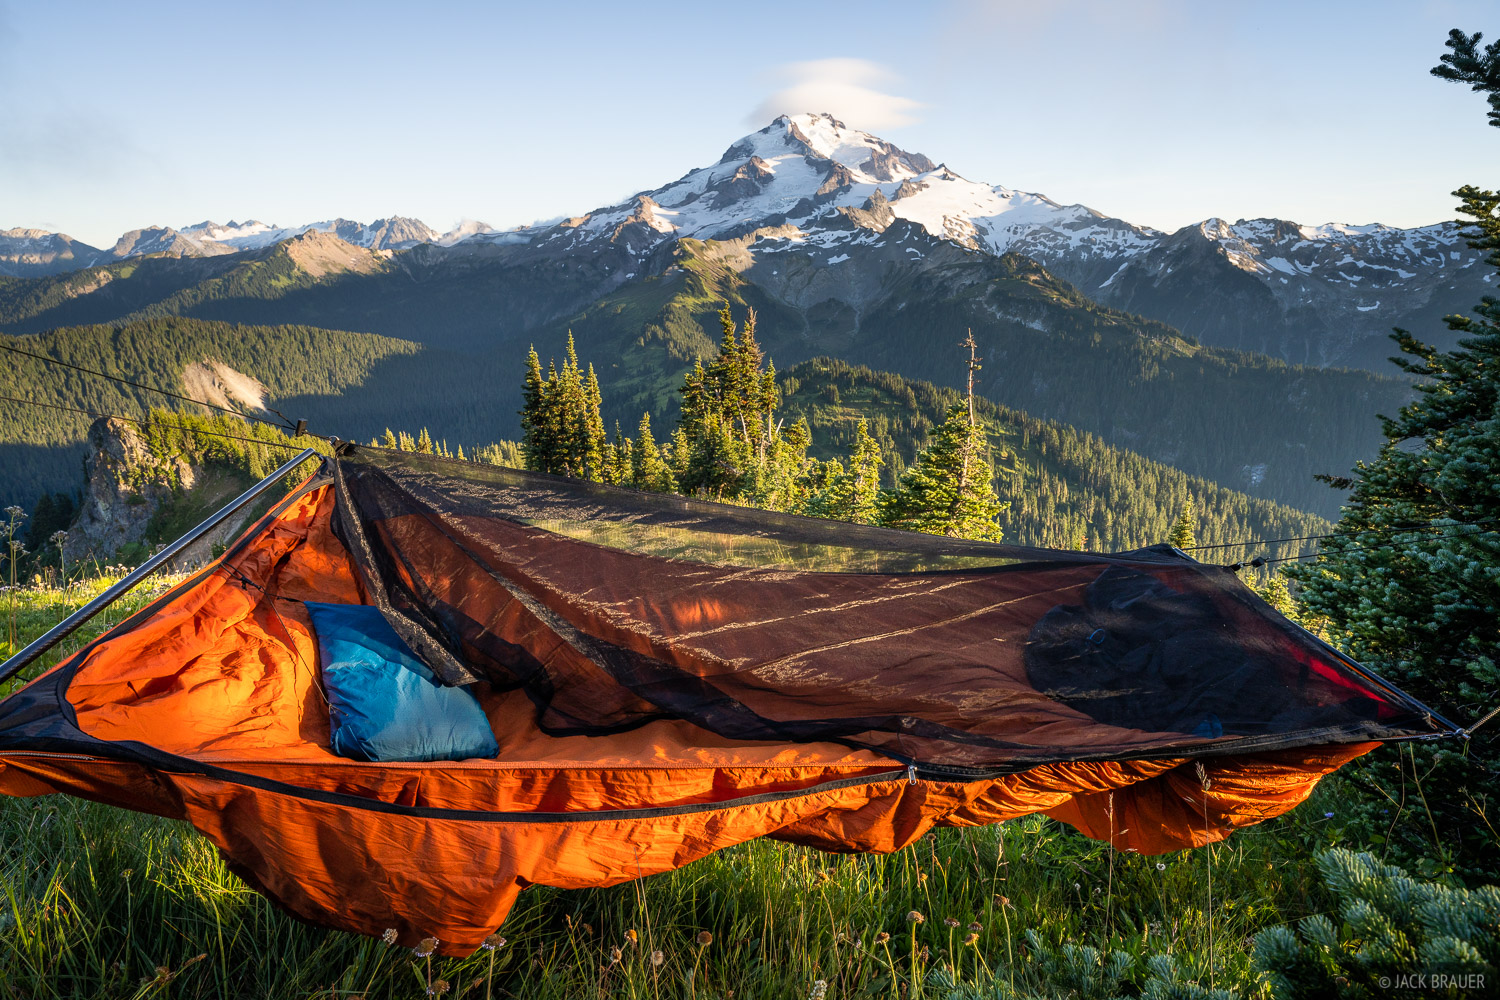 A fantastic hammock camp with a mega view of Glacier Peak.